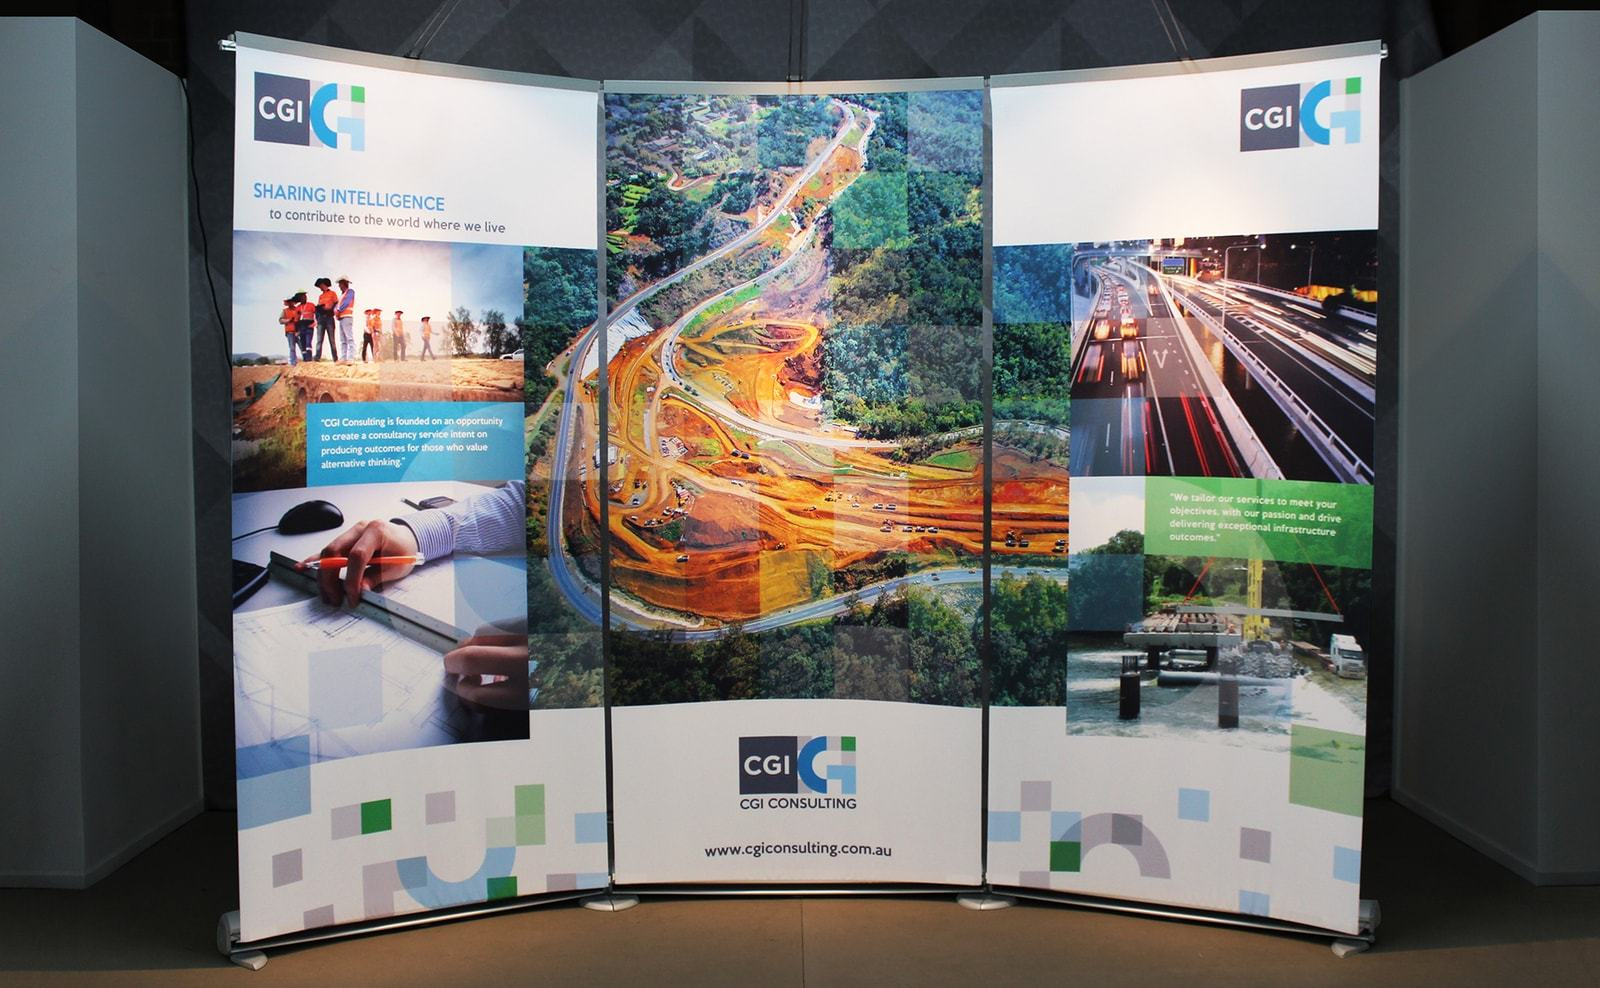 cgi consulting banner stand display - Booth Design Ideas